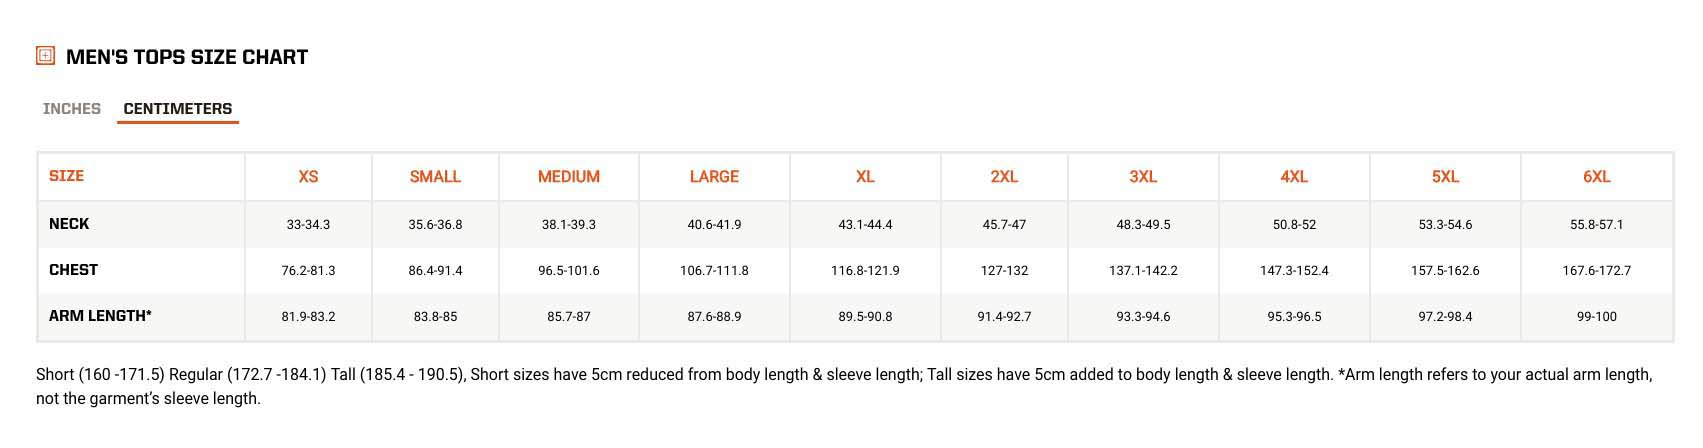 5.11-mens-tops-centimeters-chart.jpg